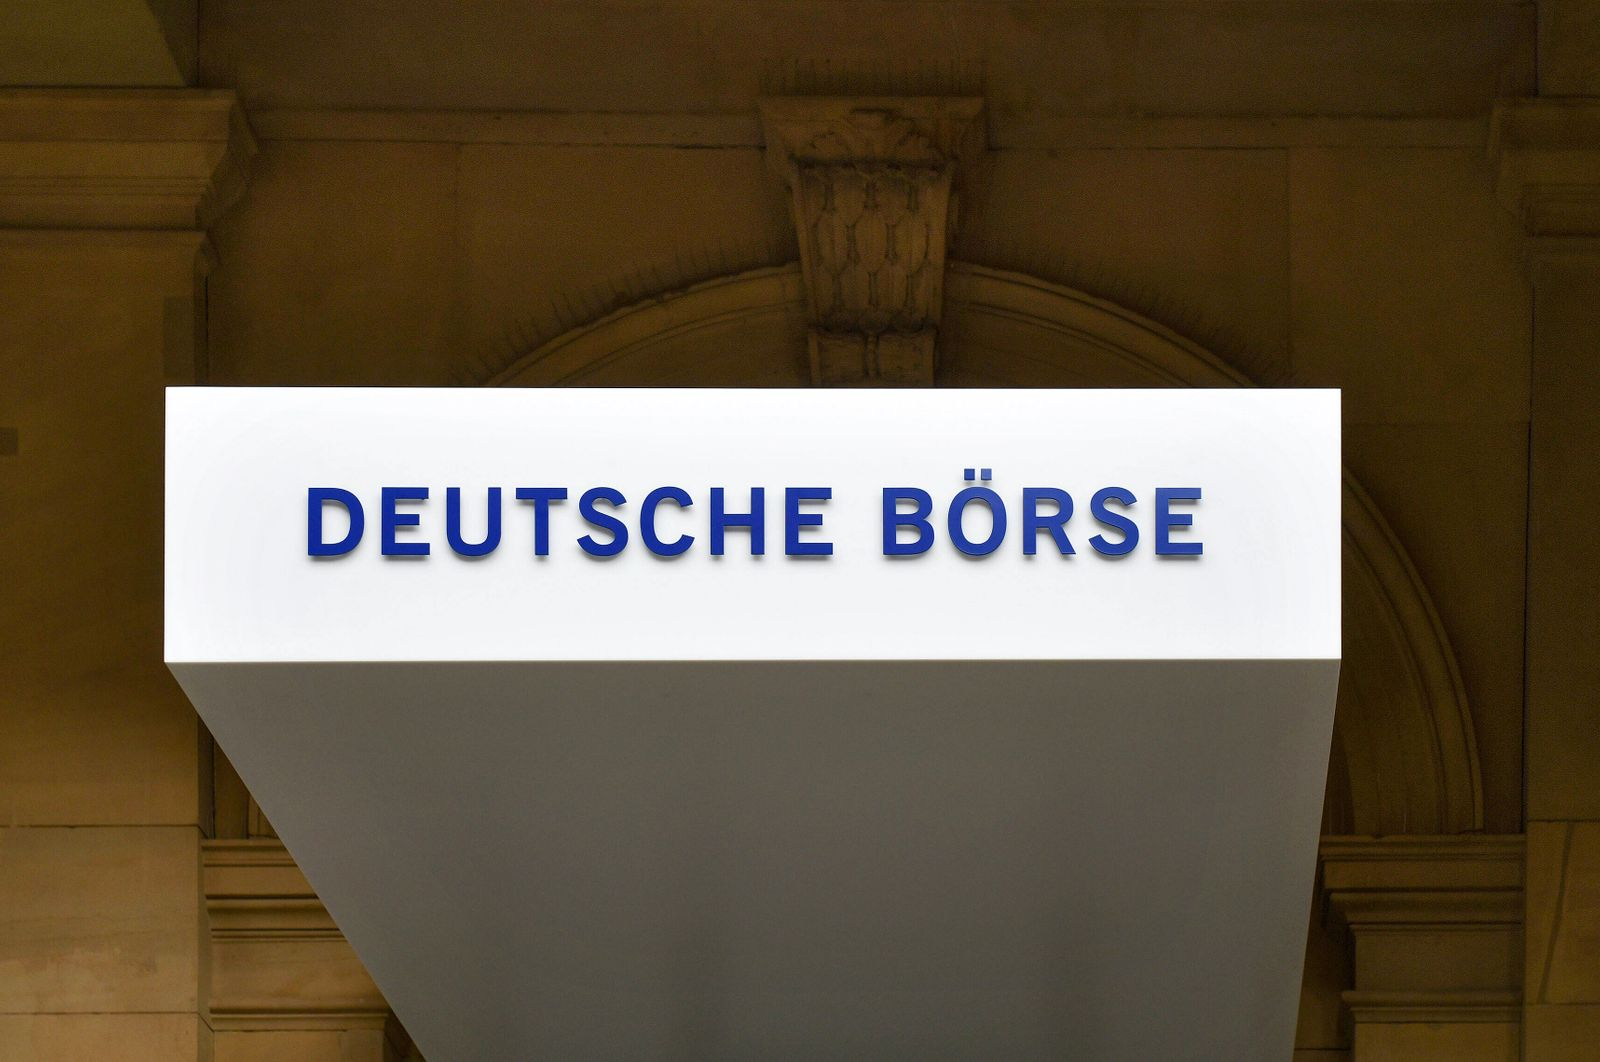 xblx, Deutsche B?rse in Frankfurt, Wertpapierhandel Frankfurt am Main *** xblx, Deutsche B?rse in Frankfurt, Securities